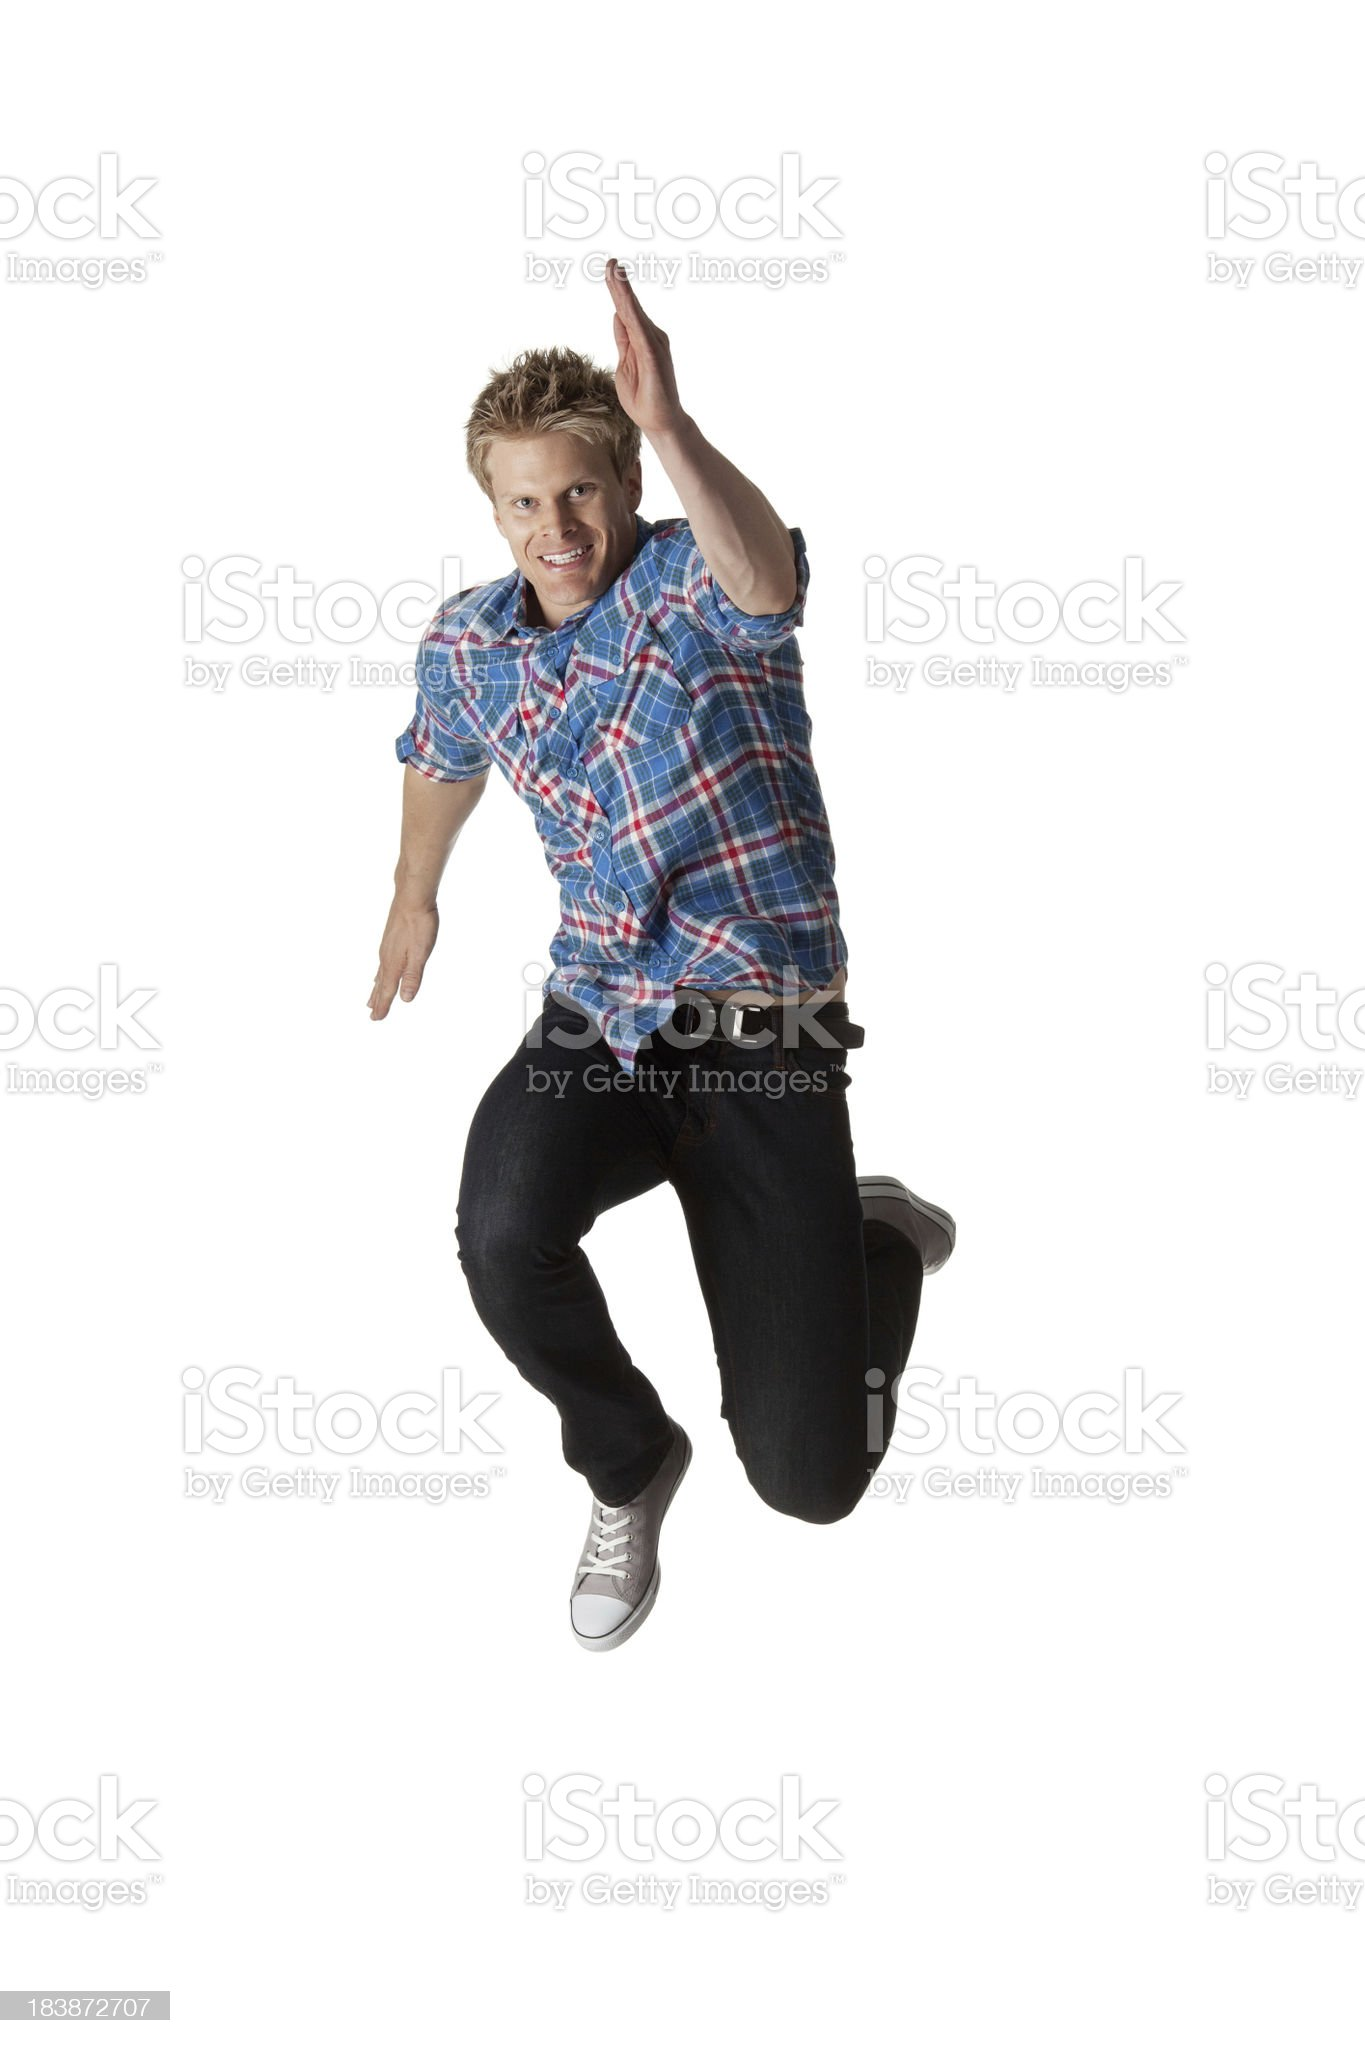 Man running in a hurry royalty-free stock photo